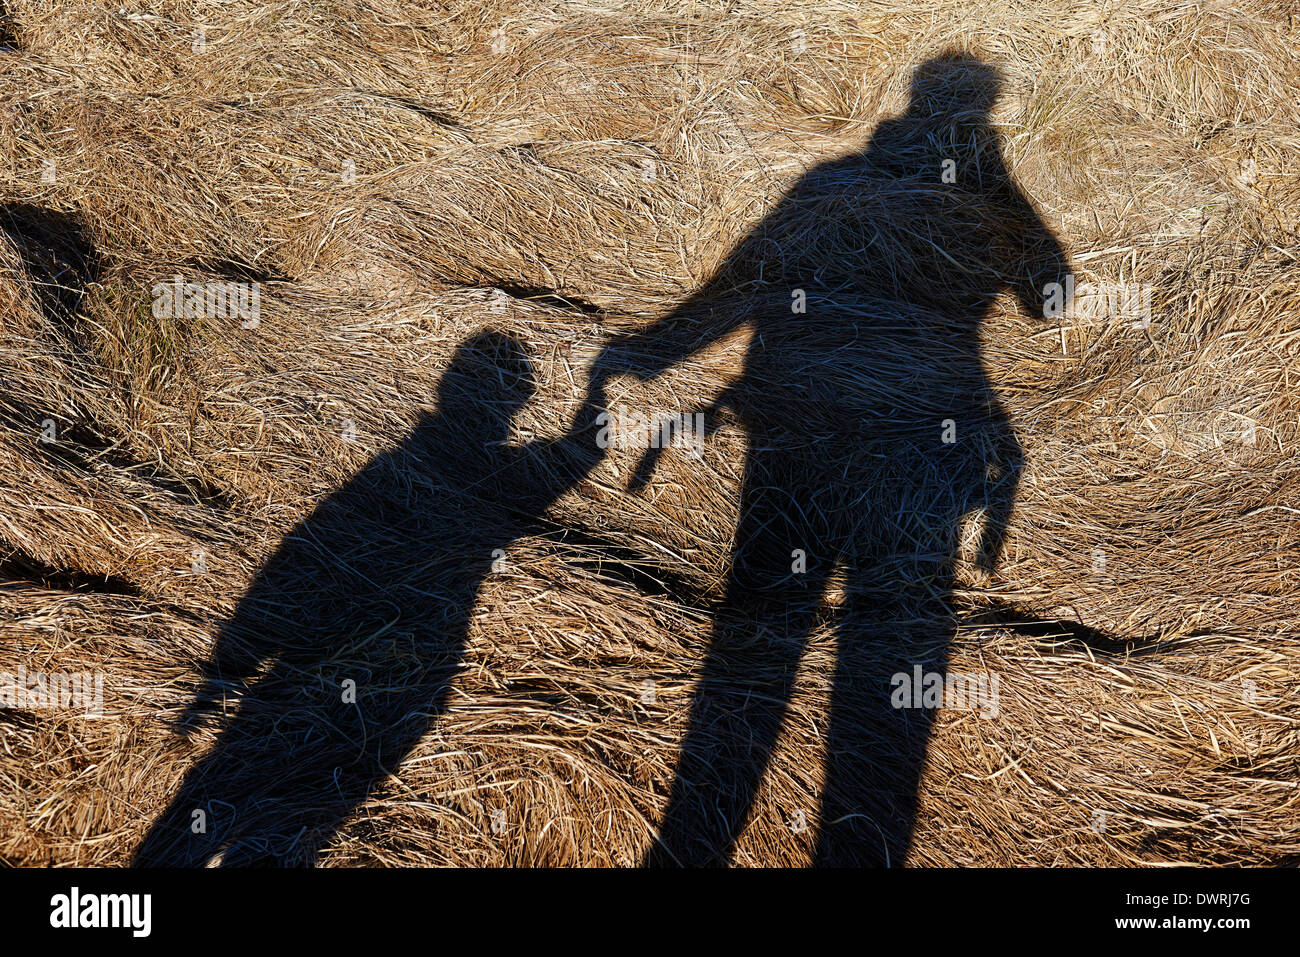 Spring Silhouettes And Shadows >> Selfie Shadow Portrait Of Photographer Father With His Daughter